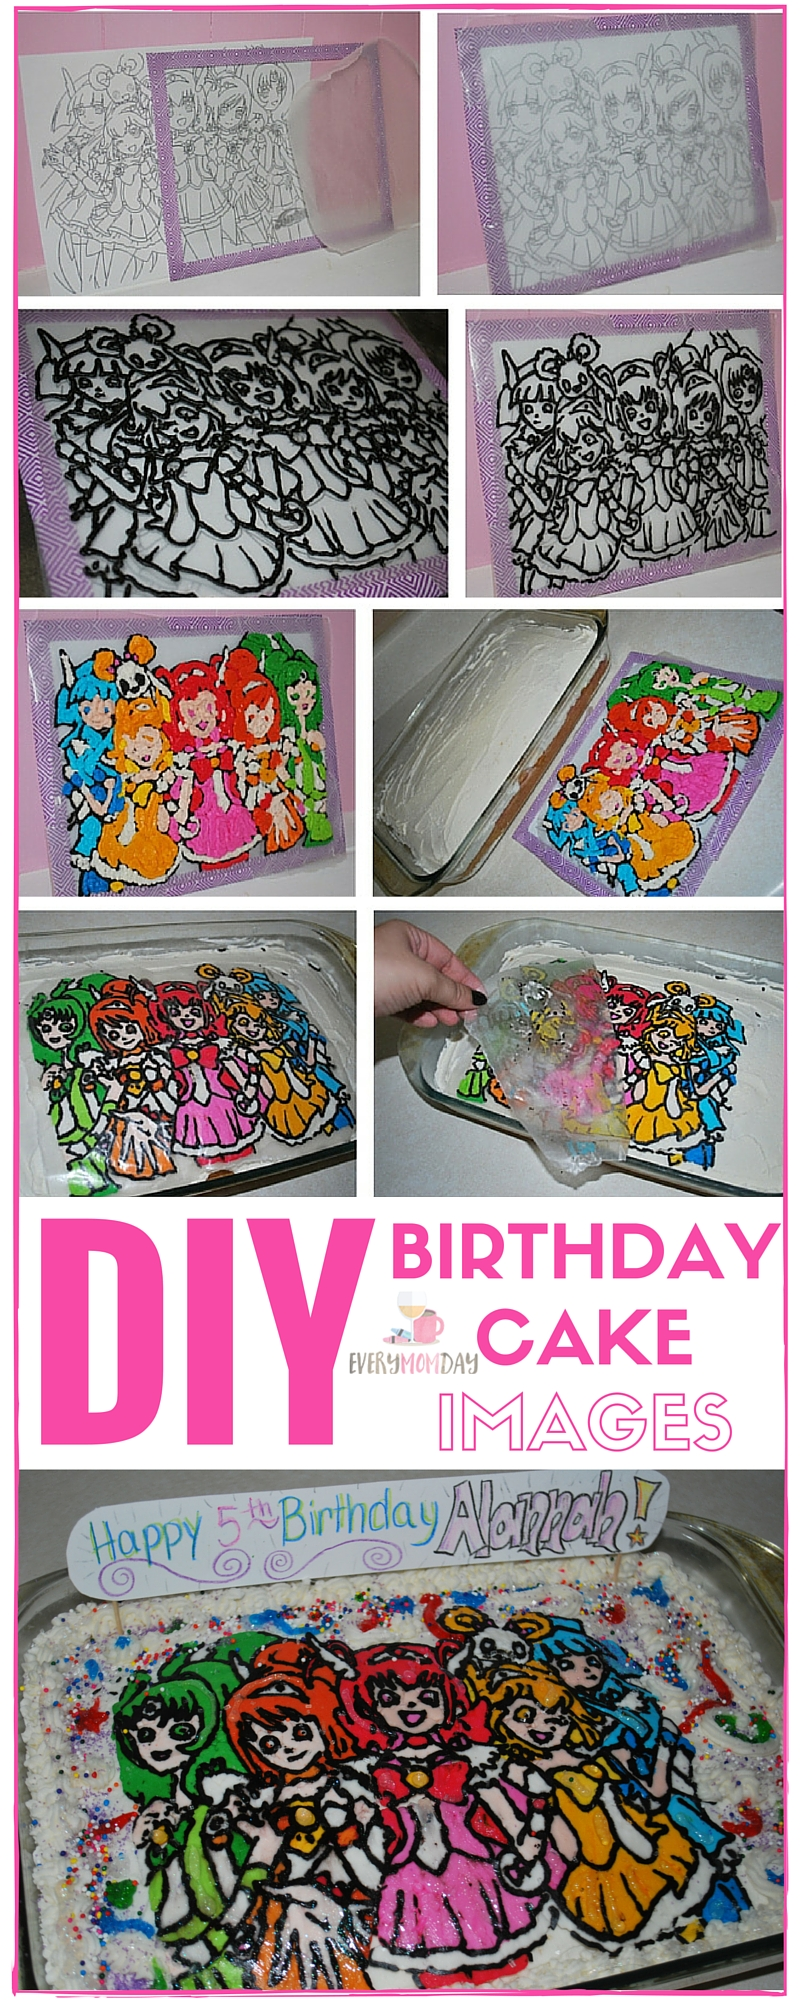 Any Birthday Theme is a DIY with this amazing cake decorating tutorial from EveryMomDay.com